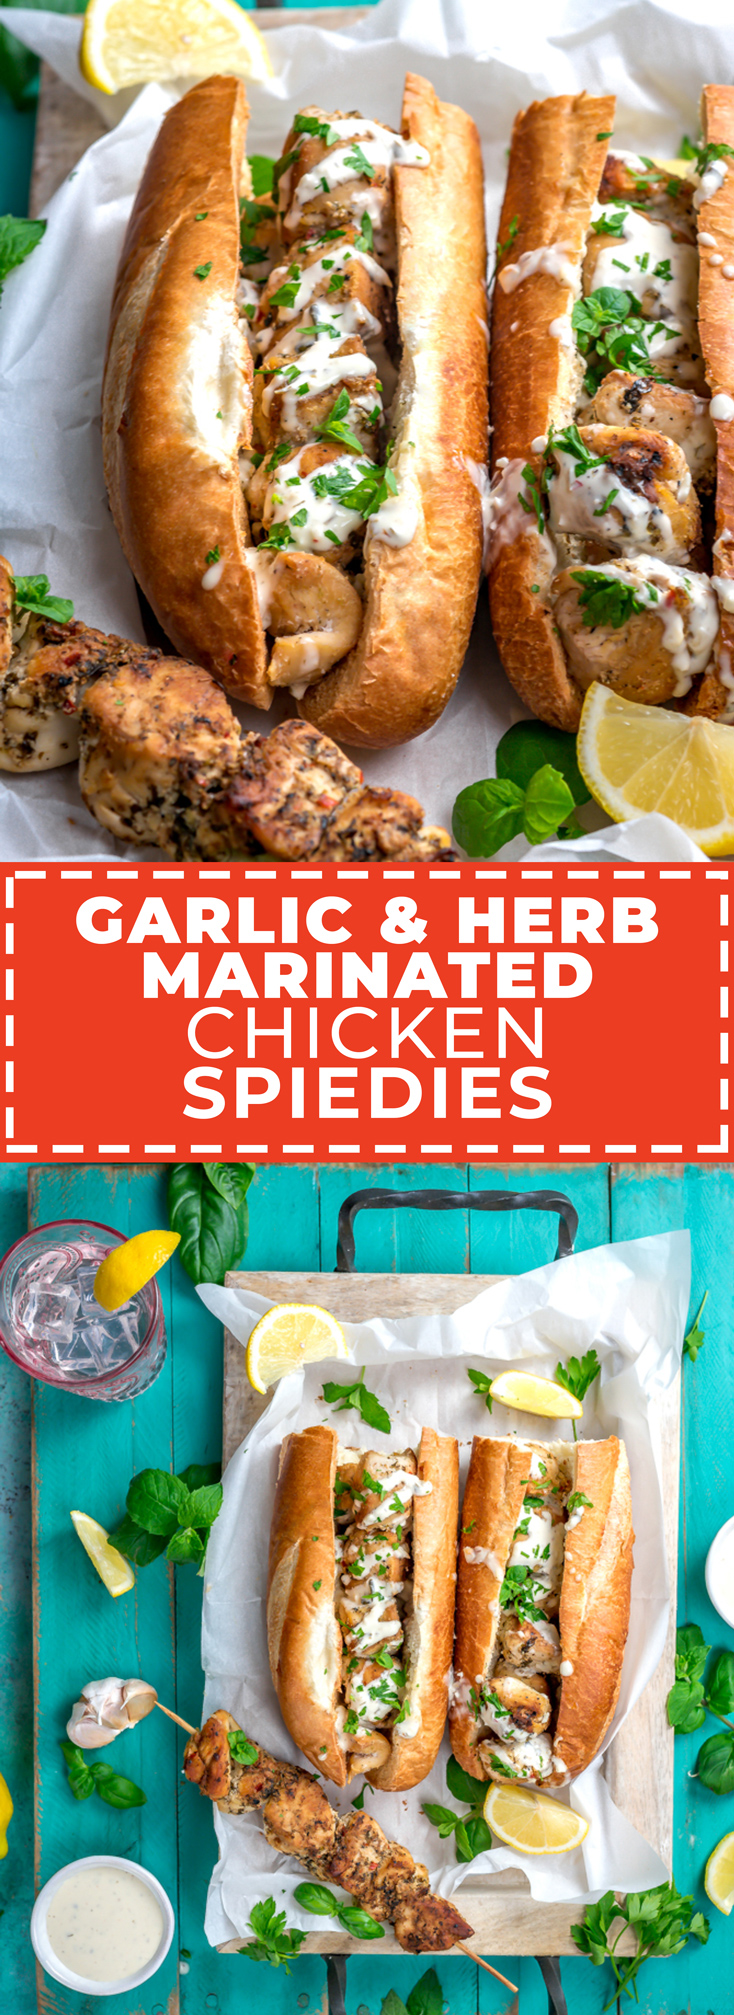 These Garlic & Herb Marinated Chicken Spiedies aren't just your run-of-the-mill chicken skewers-- they're a Central NY specialty that deserves some worldwide recognition. Chunks of chicken breast are marinated for at least 12 hours in a tangy, herb-spiked marinade and then grilled before being served on soft Italian bread with a generous drizzle of garlic sauce. | hostthetoast.com